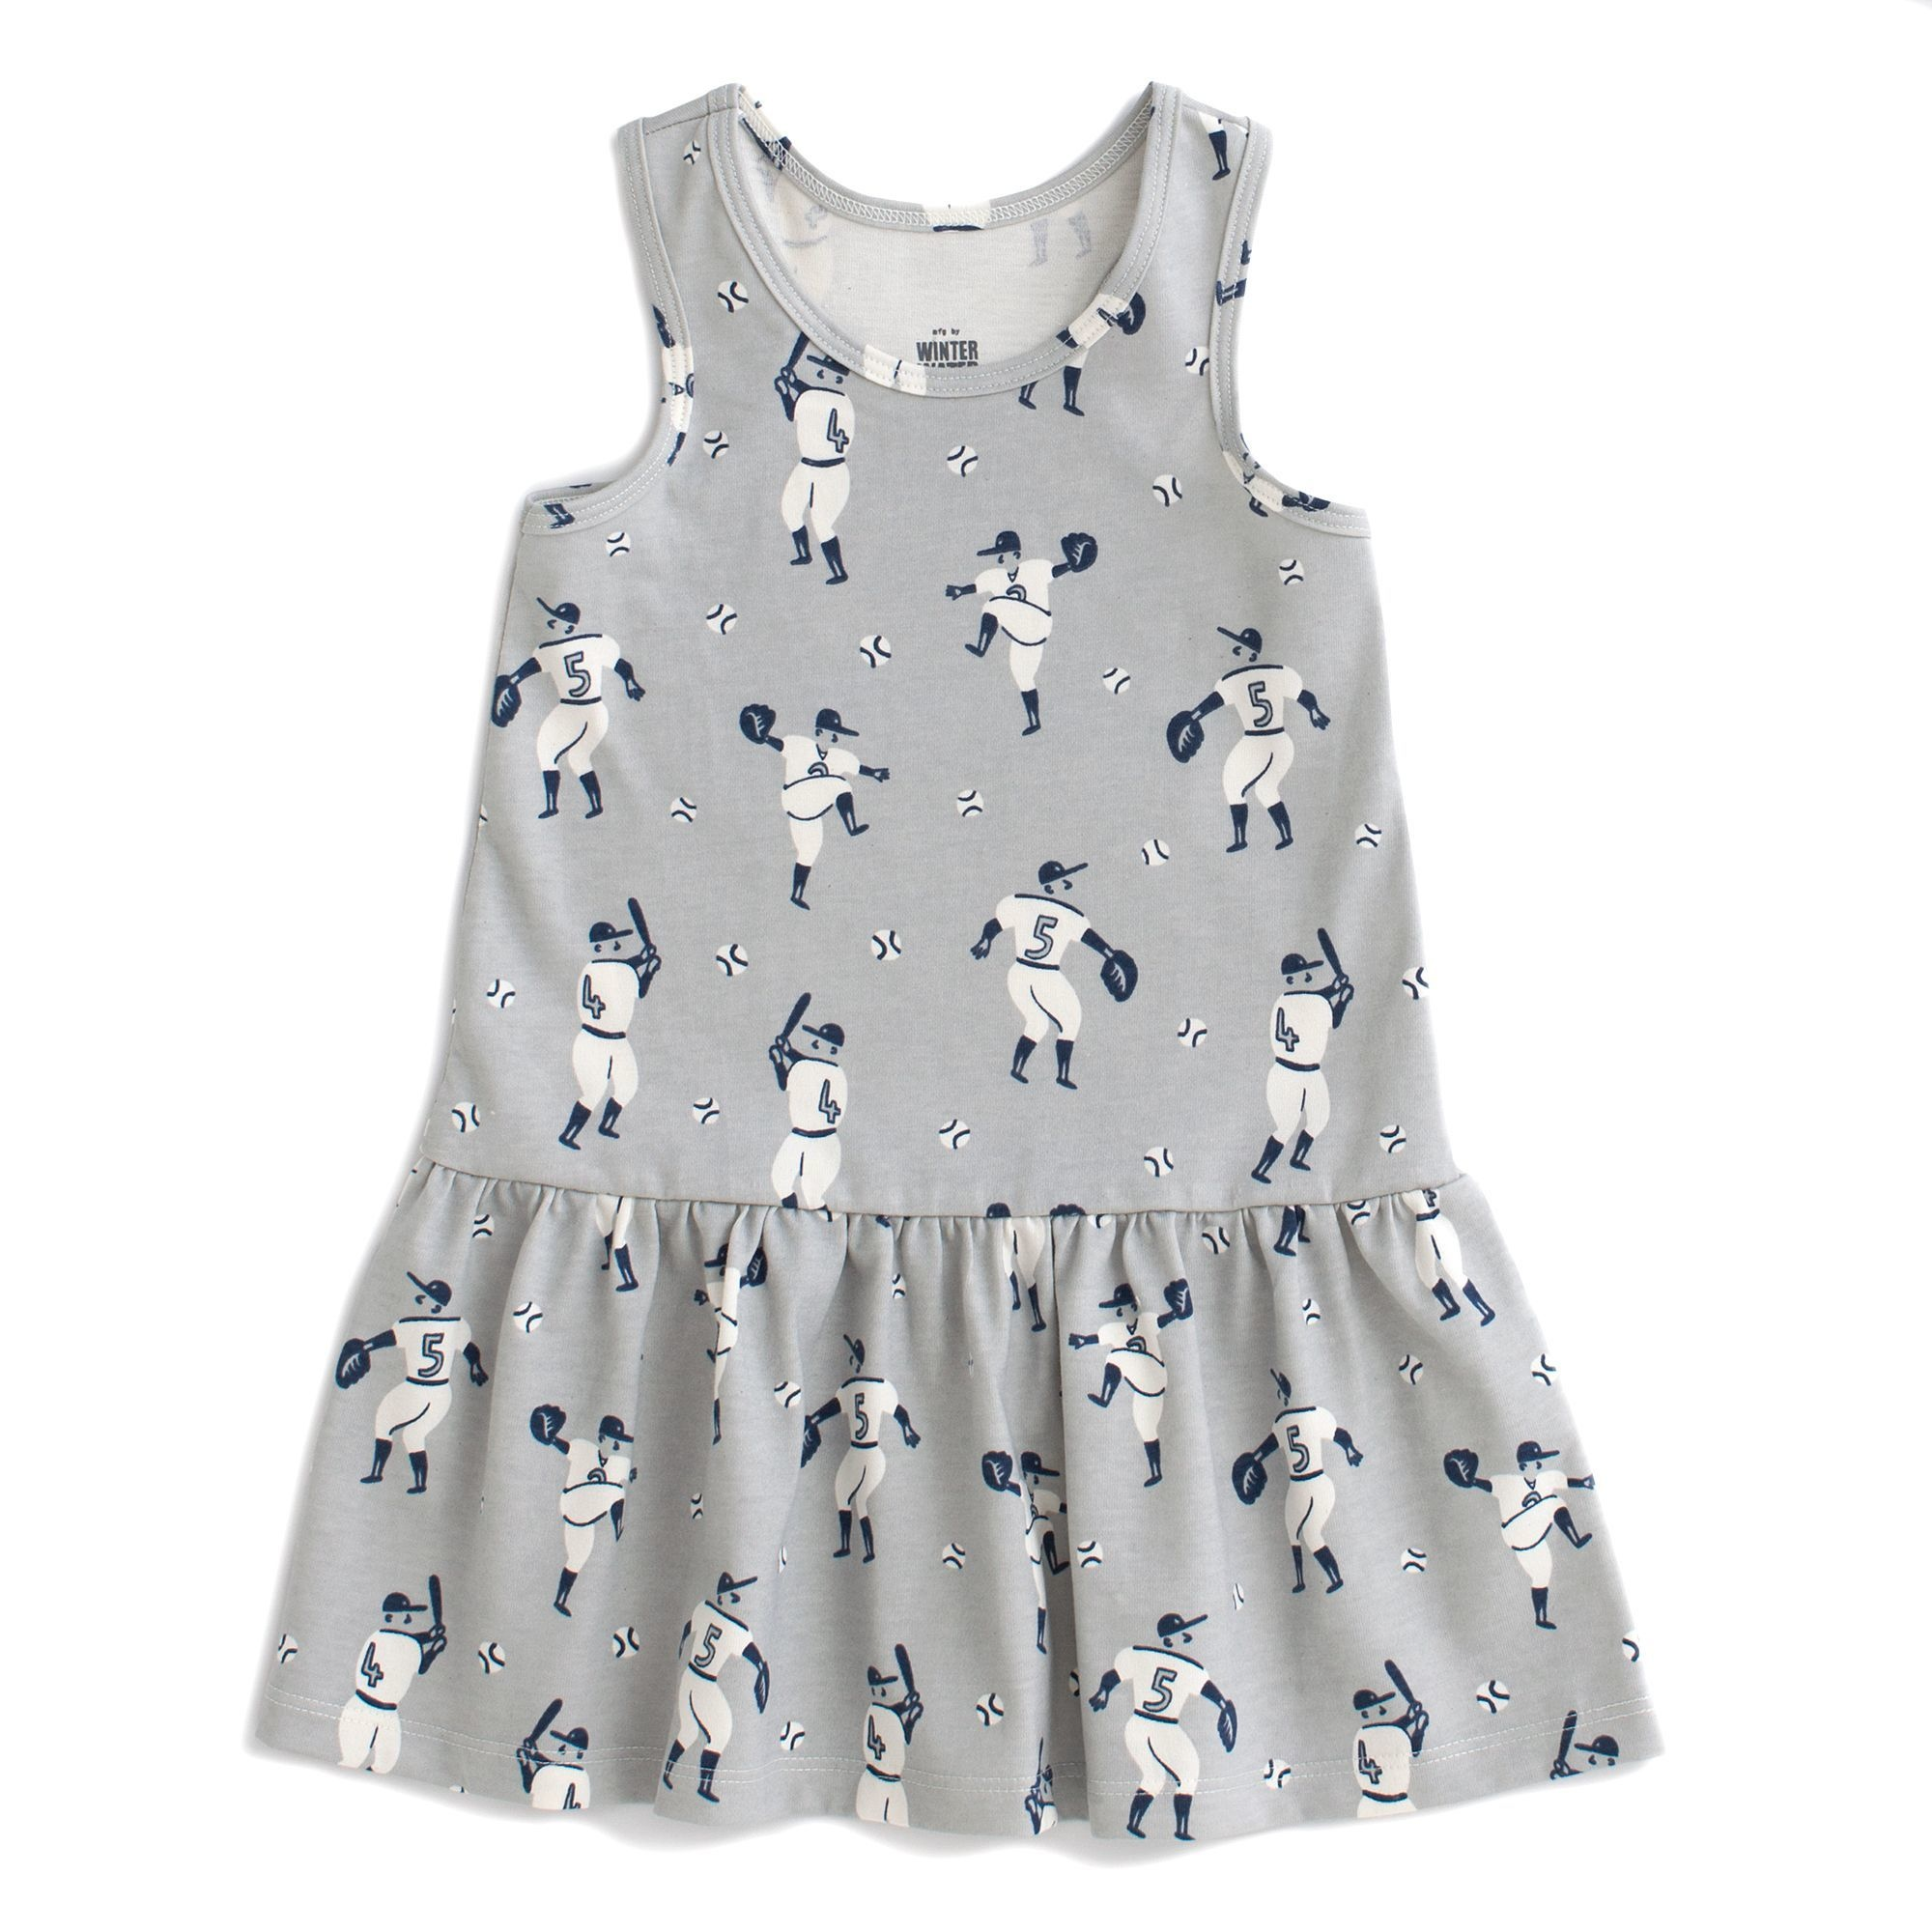 WINTER WATER FACTORY Baseball Valencia Dress